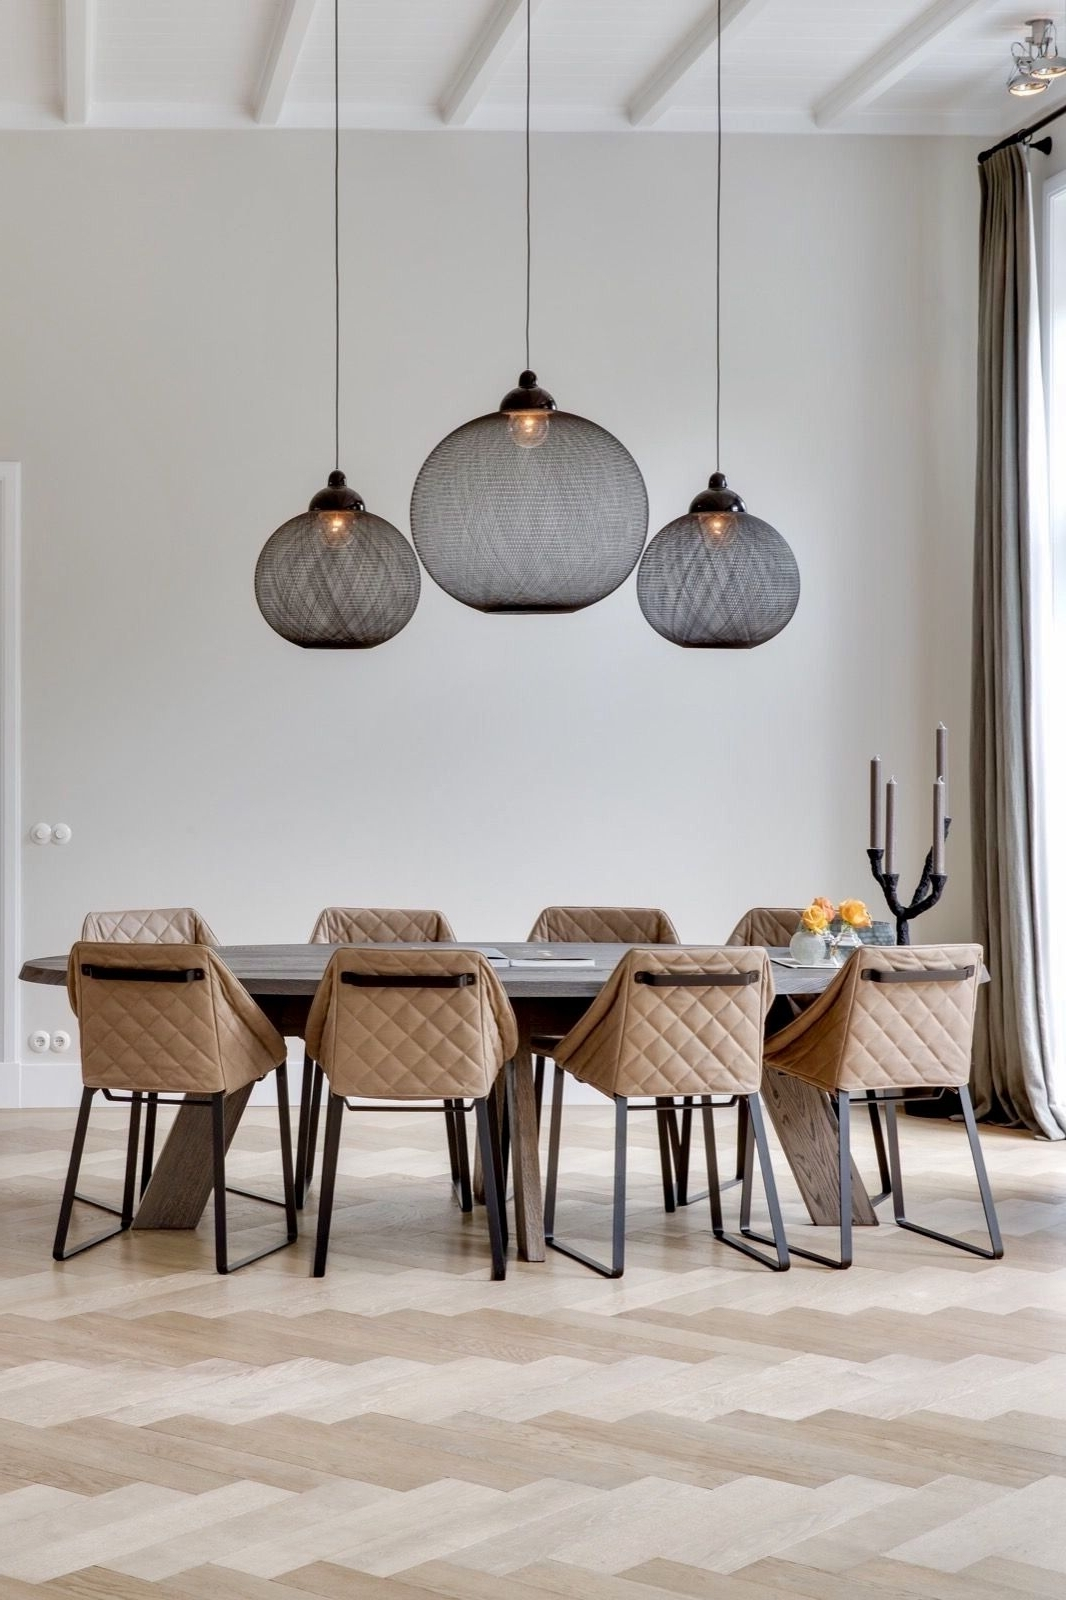 22 Best Ideas Of Pendant Lighting For Kitchen, Dining Room And For Most Recently Released Lights For Dining Tables (Gallery 3 of 25)